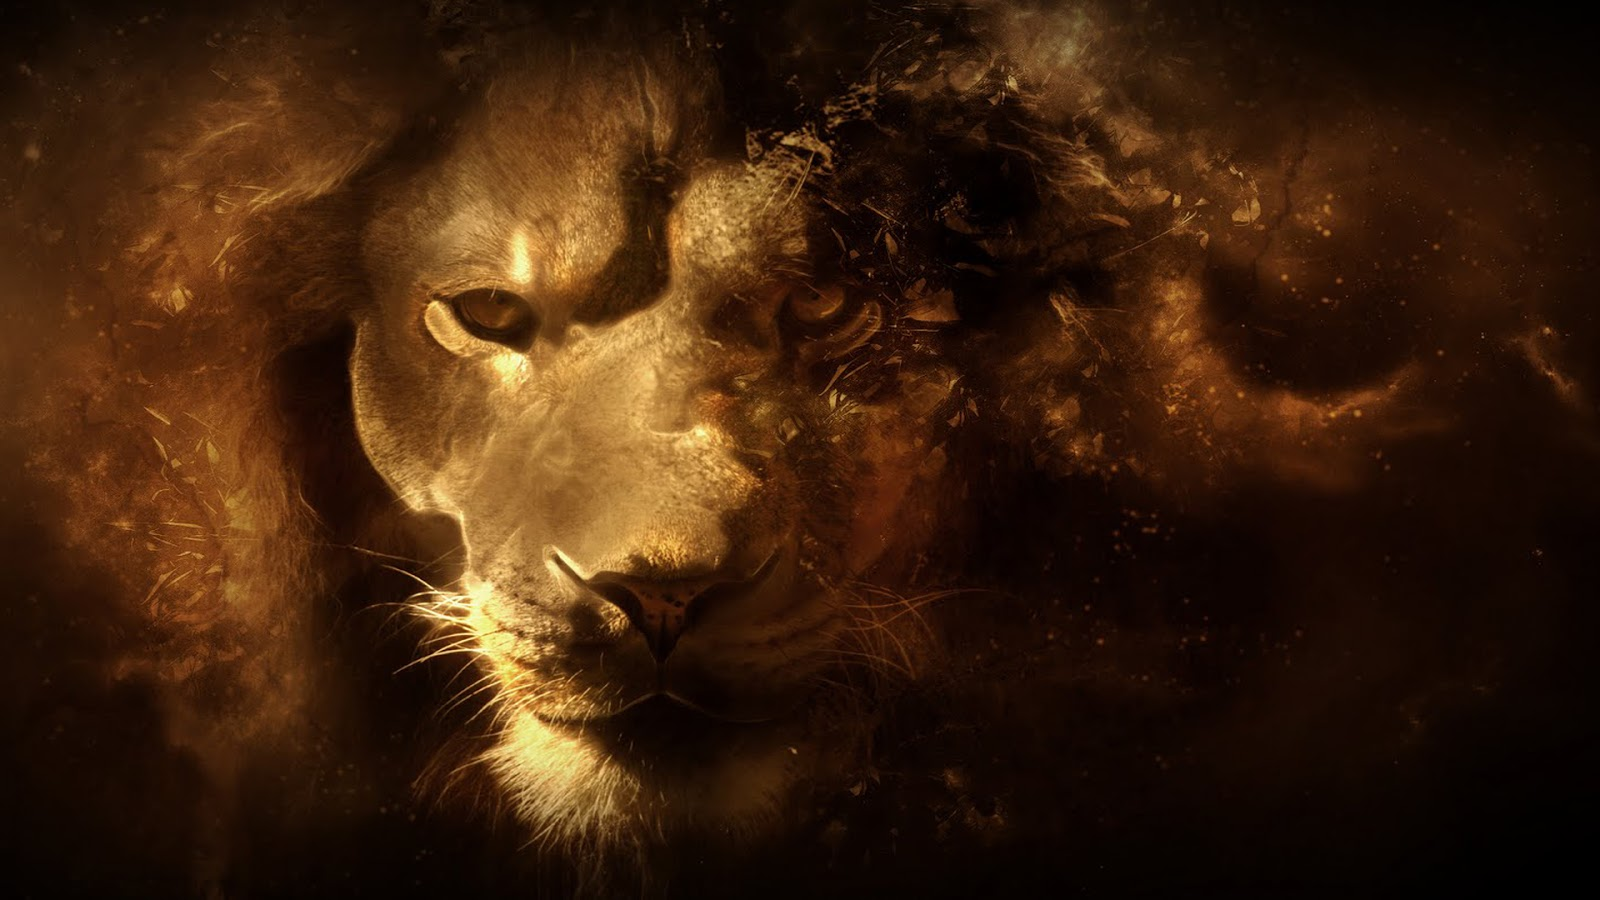 Lion 1080p Wallpaper Wallpapersafari